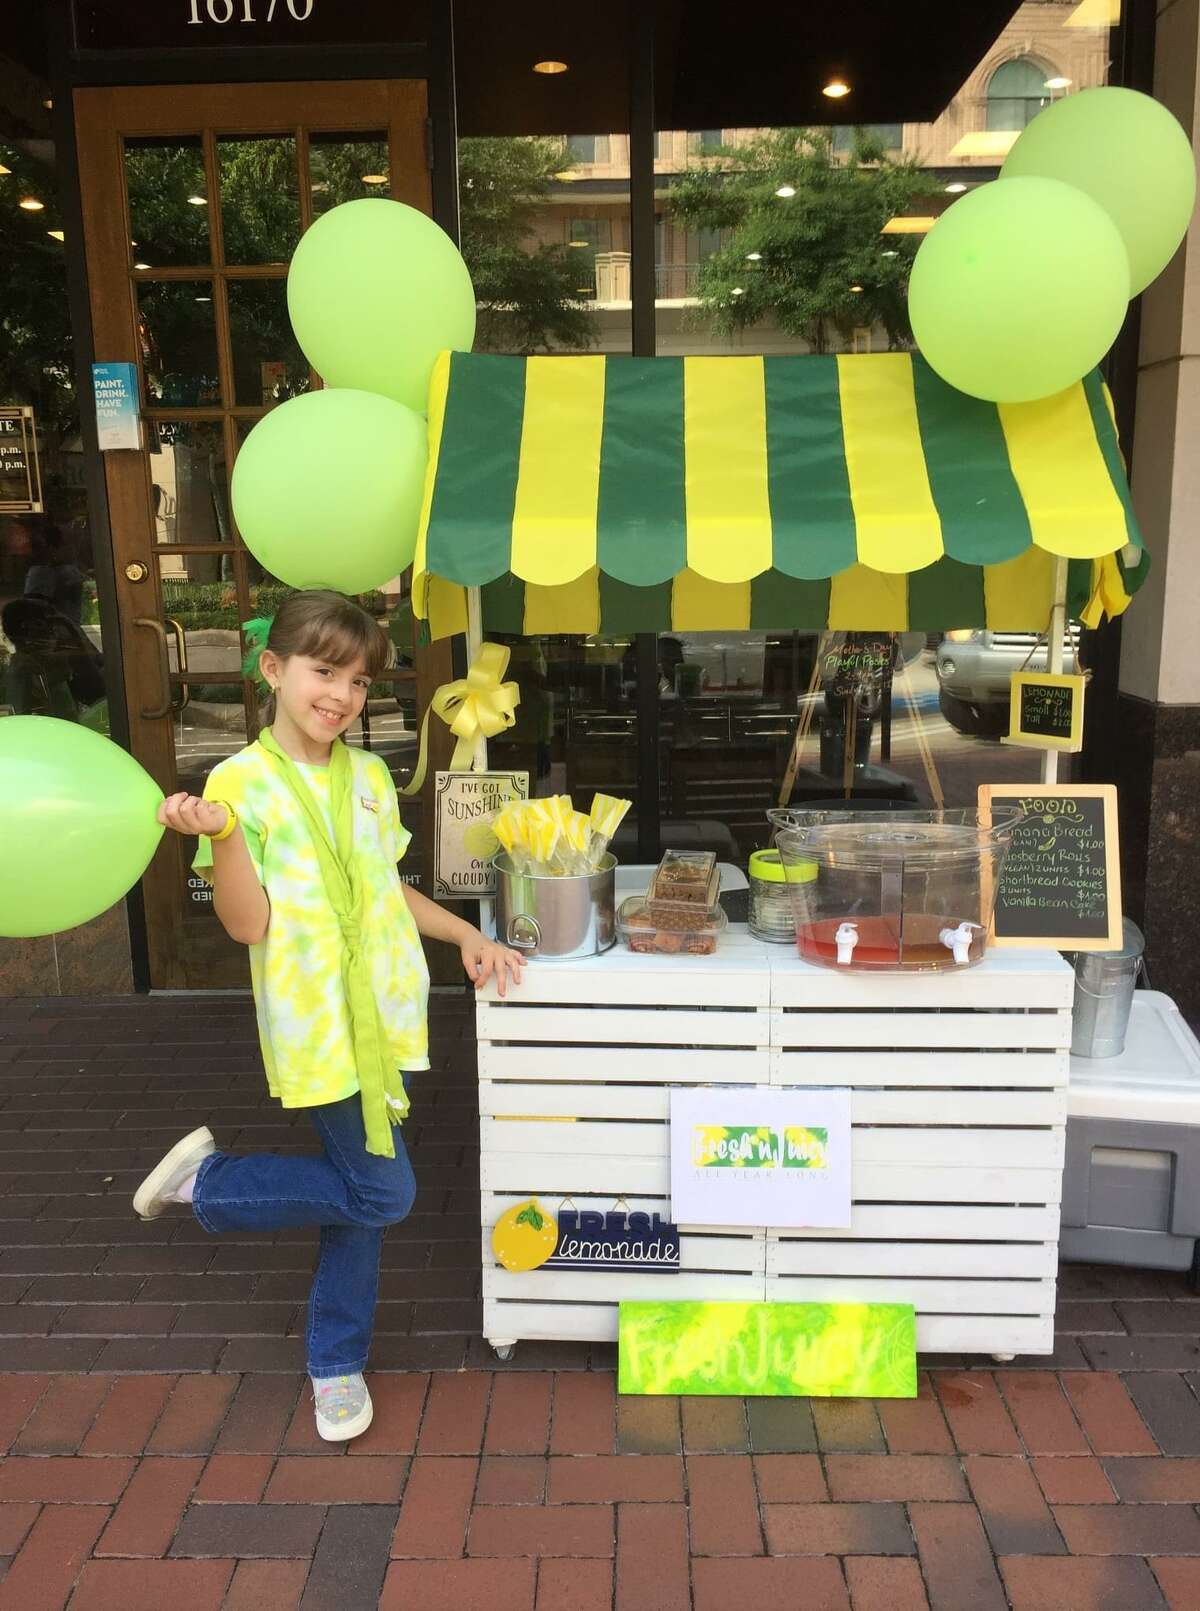 Sugar Land fourth grader Sabrina Roesler enjoys serving her special lemonade. She has been recognized as the Lemonade Day Houston 2020 Youth Entrepreneur of the Year.